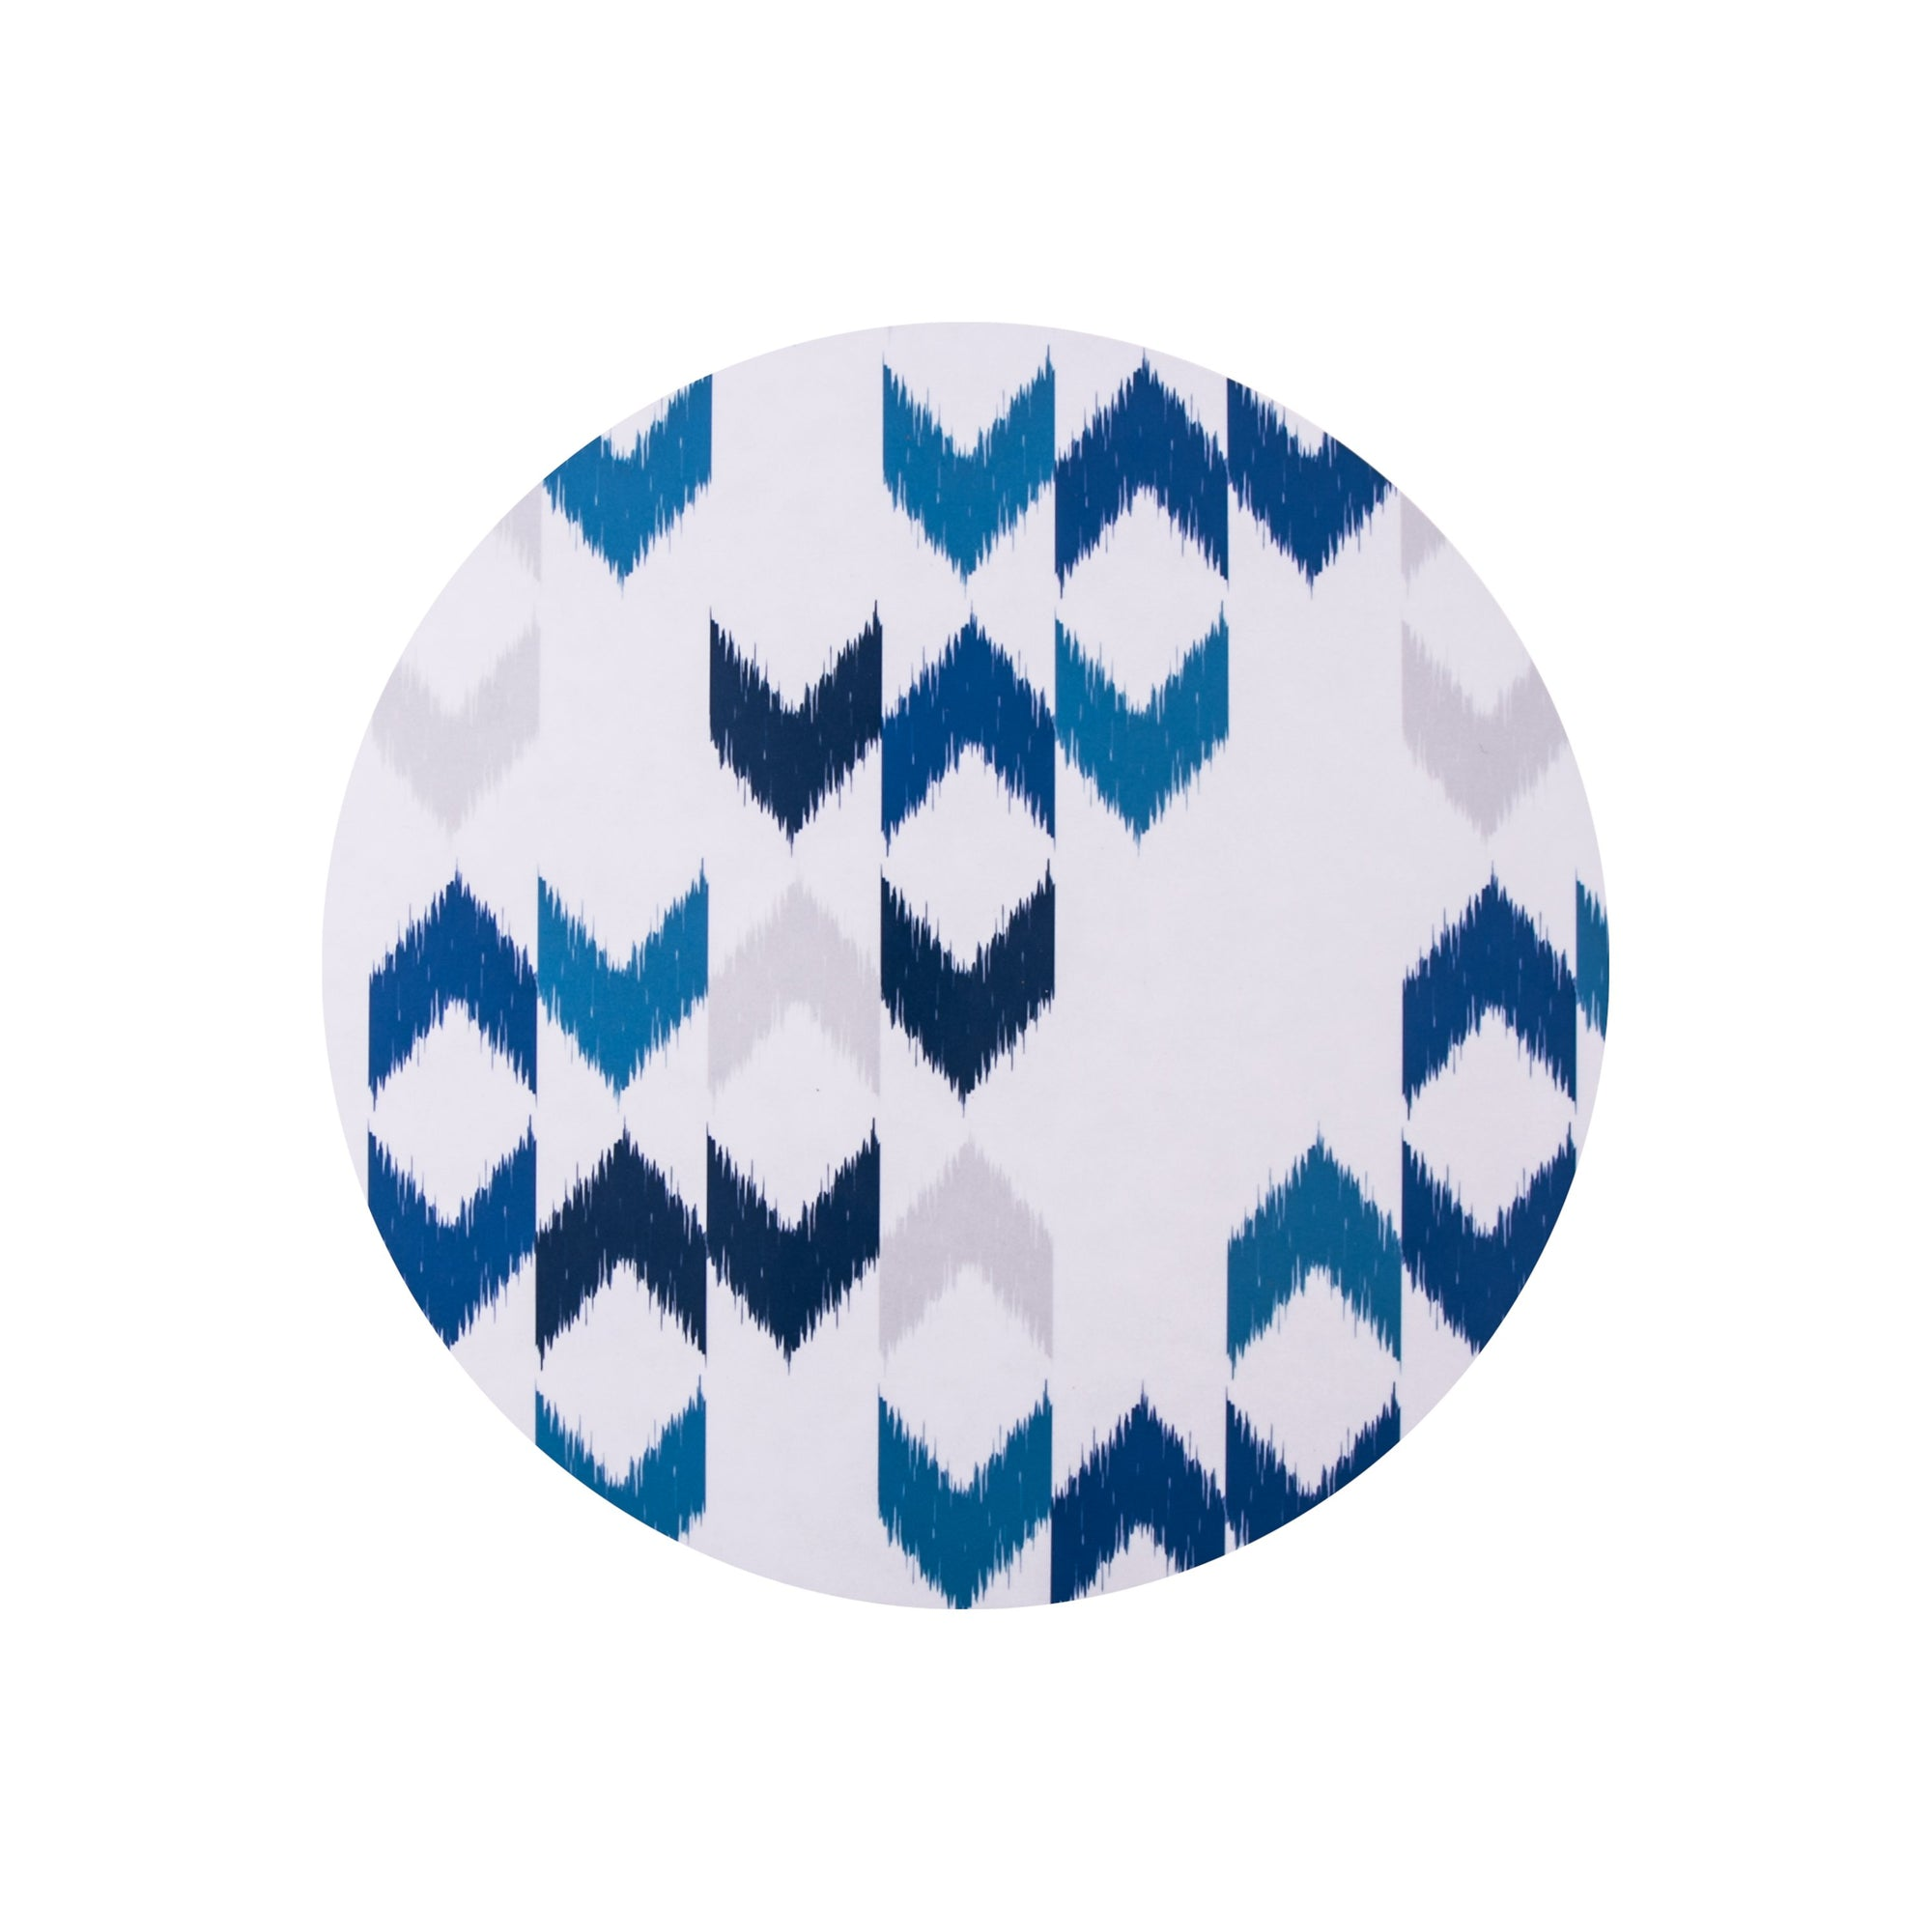 Blue Ikat Round Placemat Set - MAiK sustainably sourced, ethically produced.